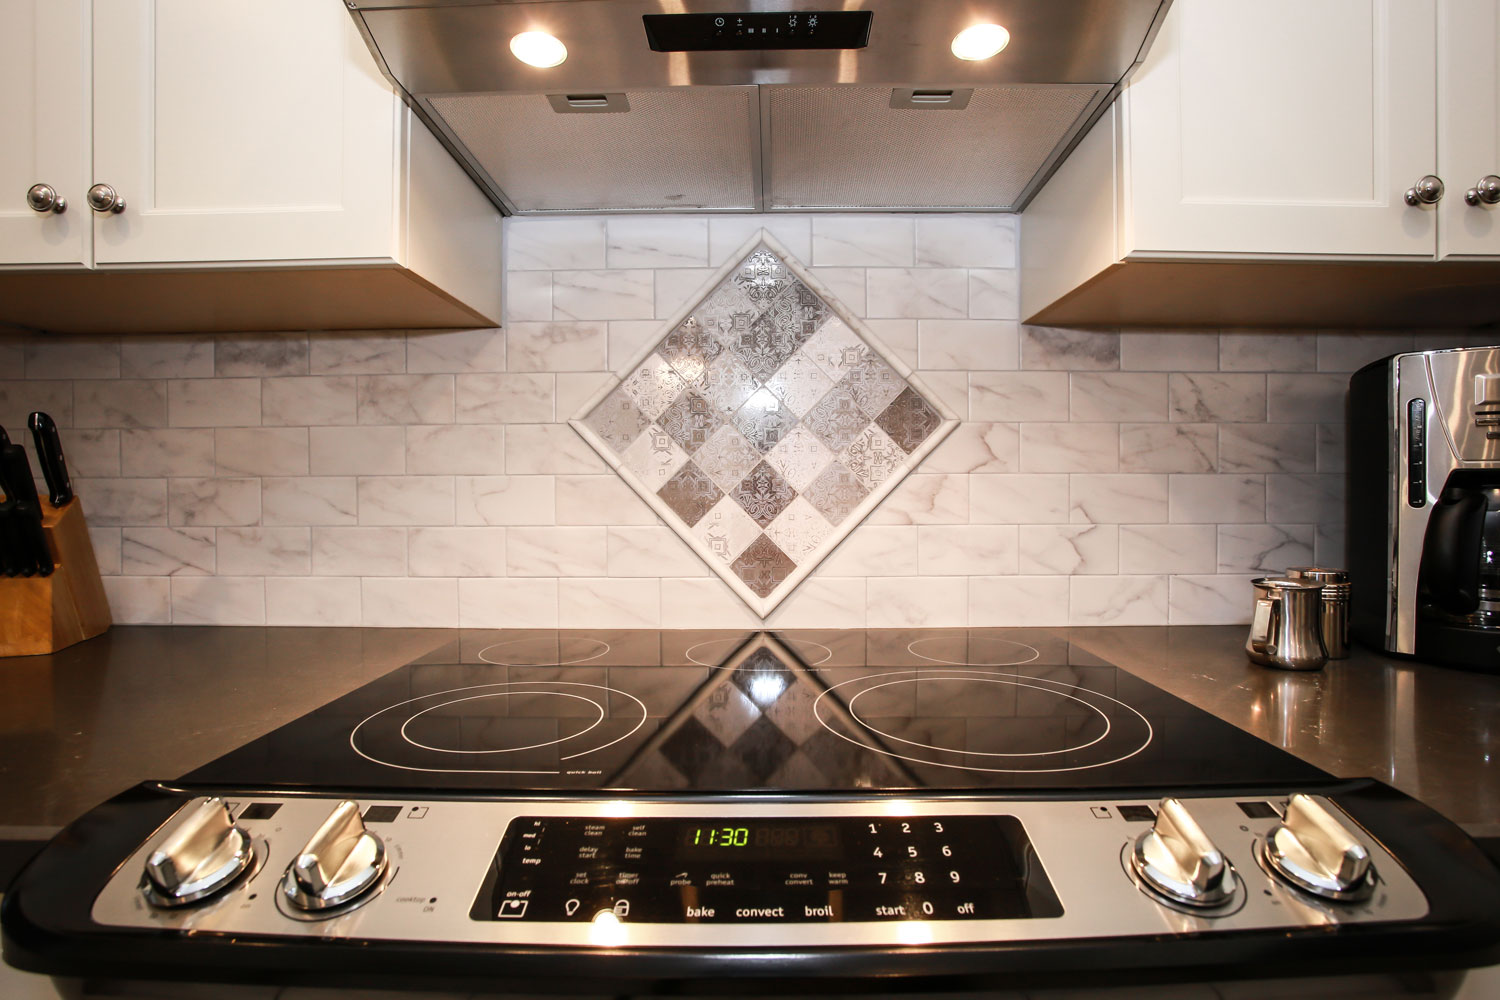 Mosaic pattern in backsplash behind kitchen stovetop